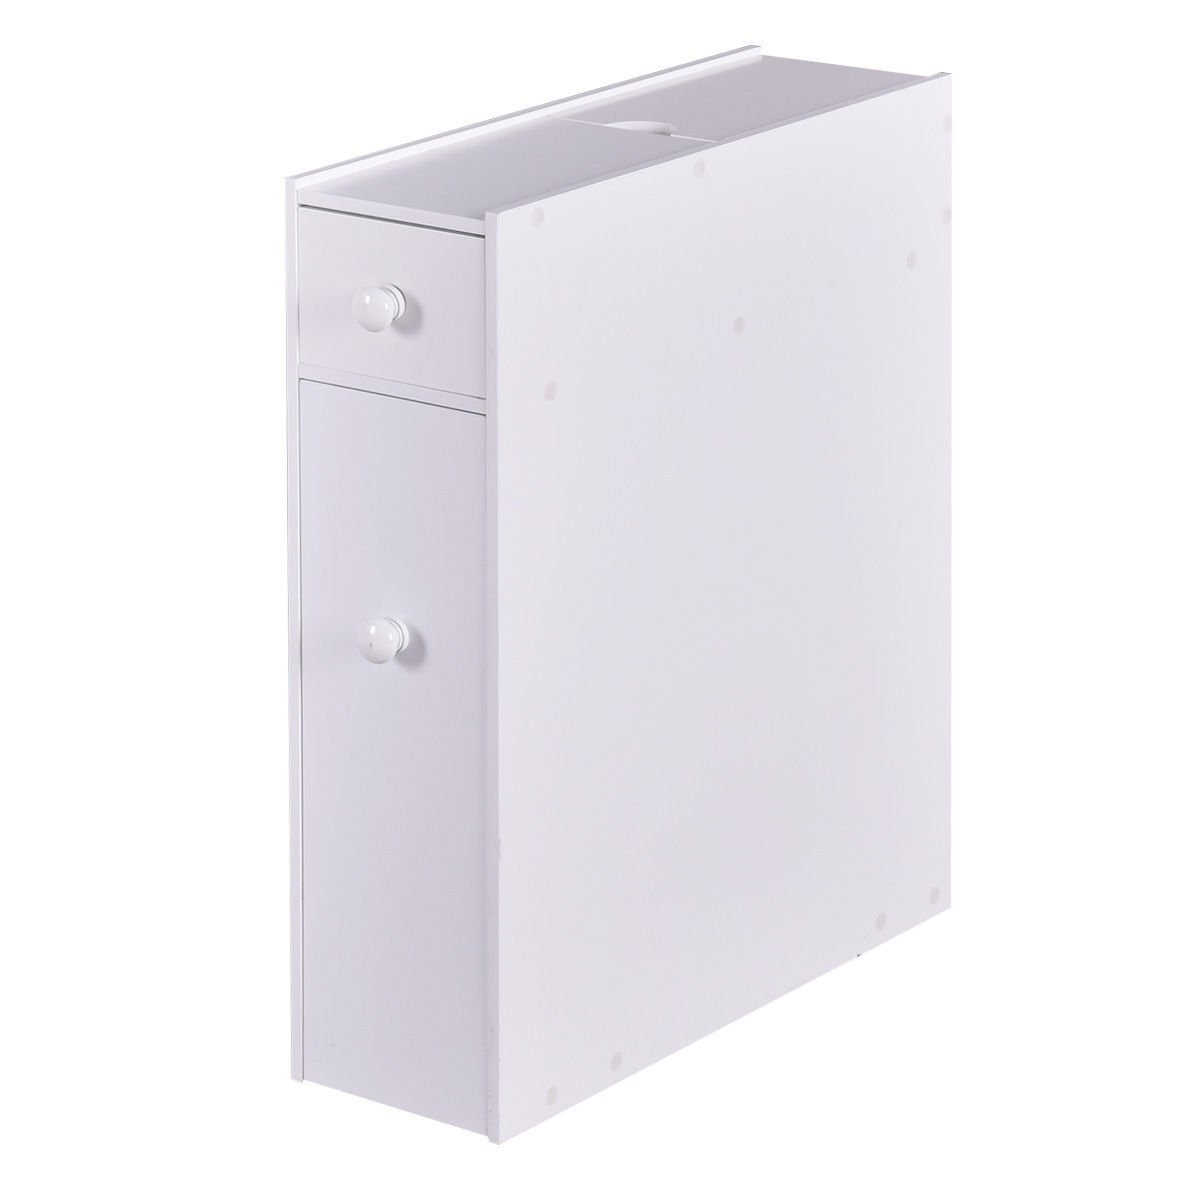 White Bahtroom Floor Cabinet Stand Storage Unit Space Saver w/ Sliding Drawer by AYAM